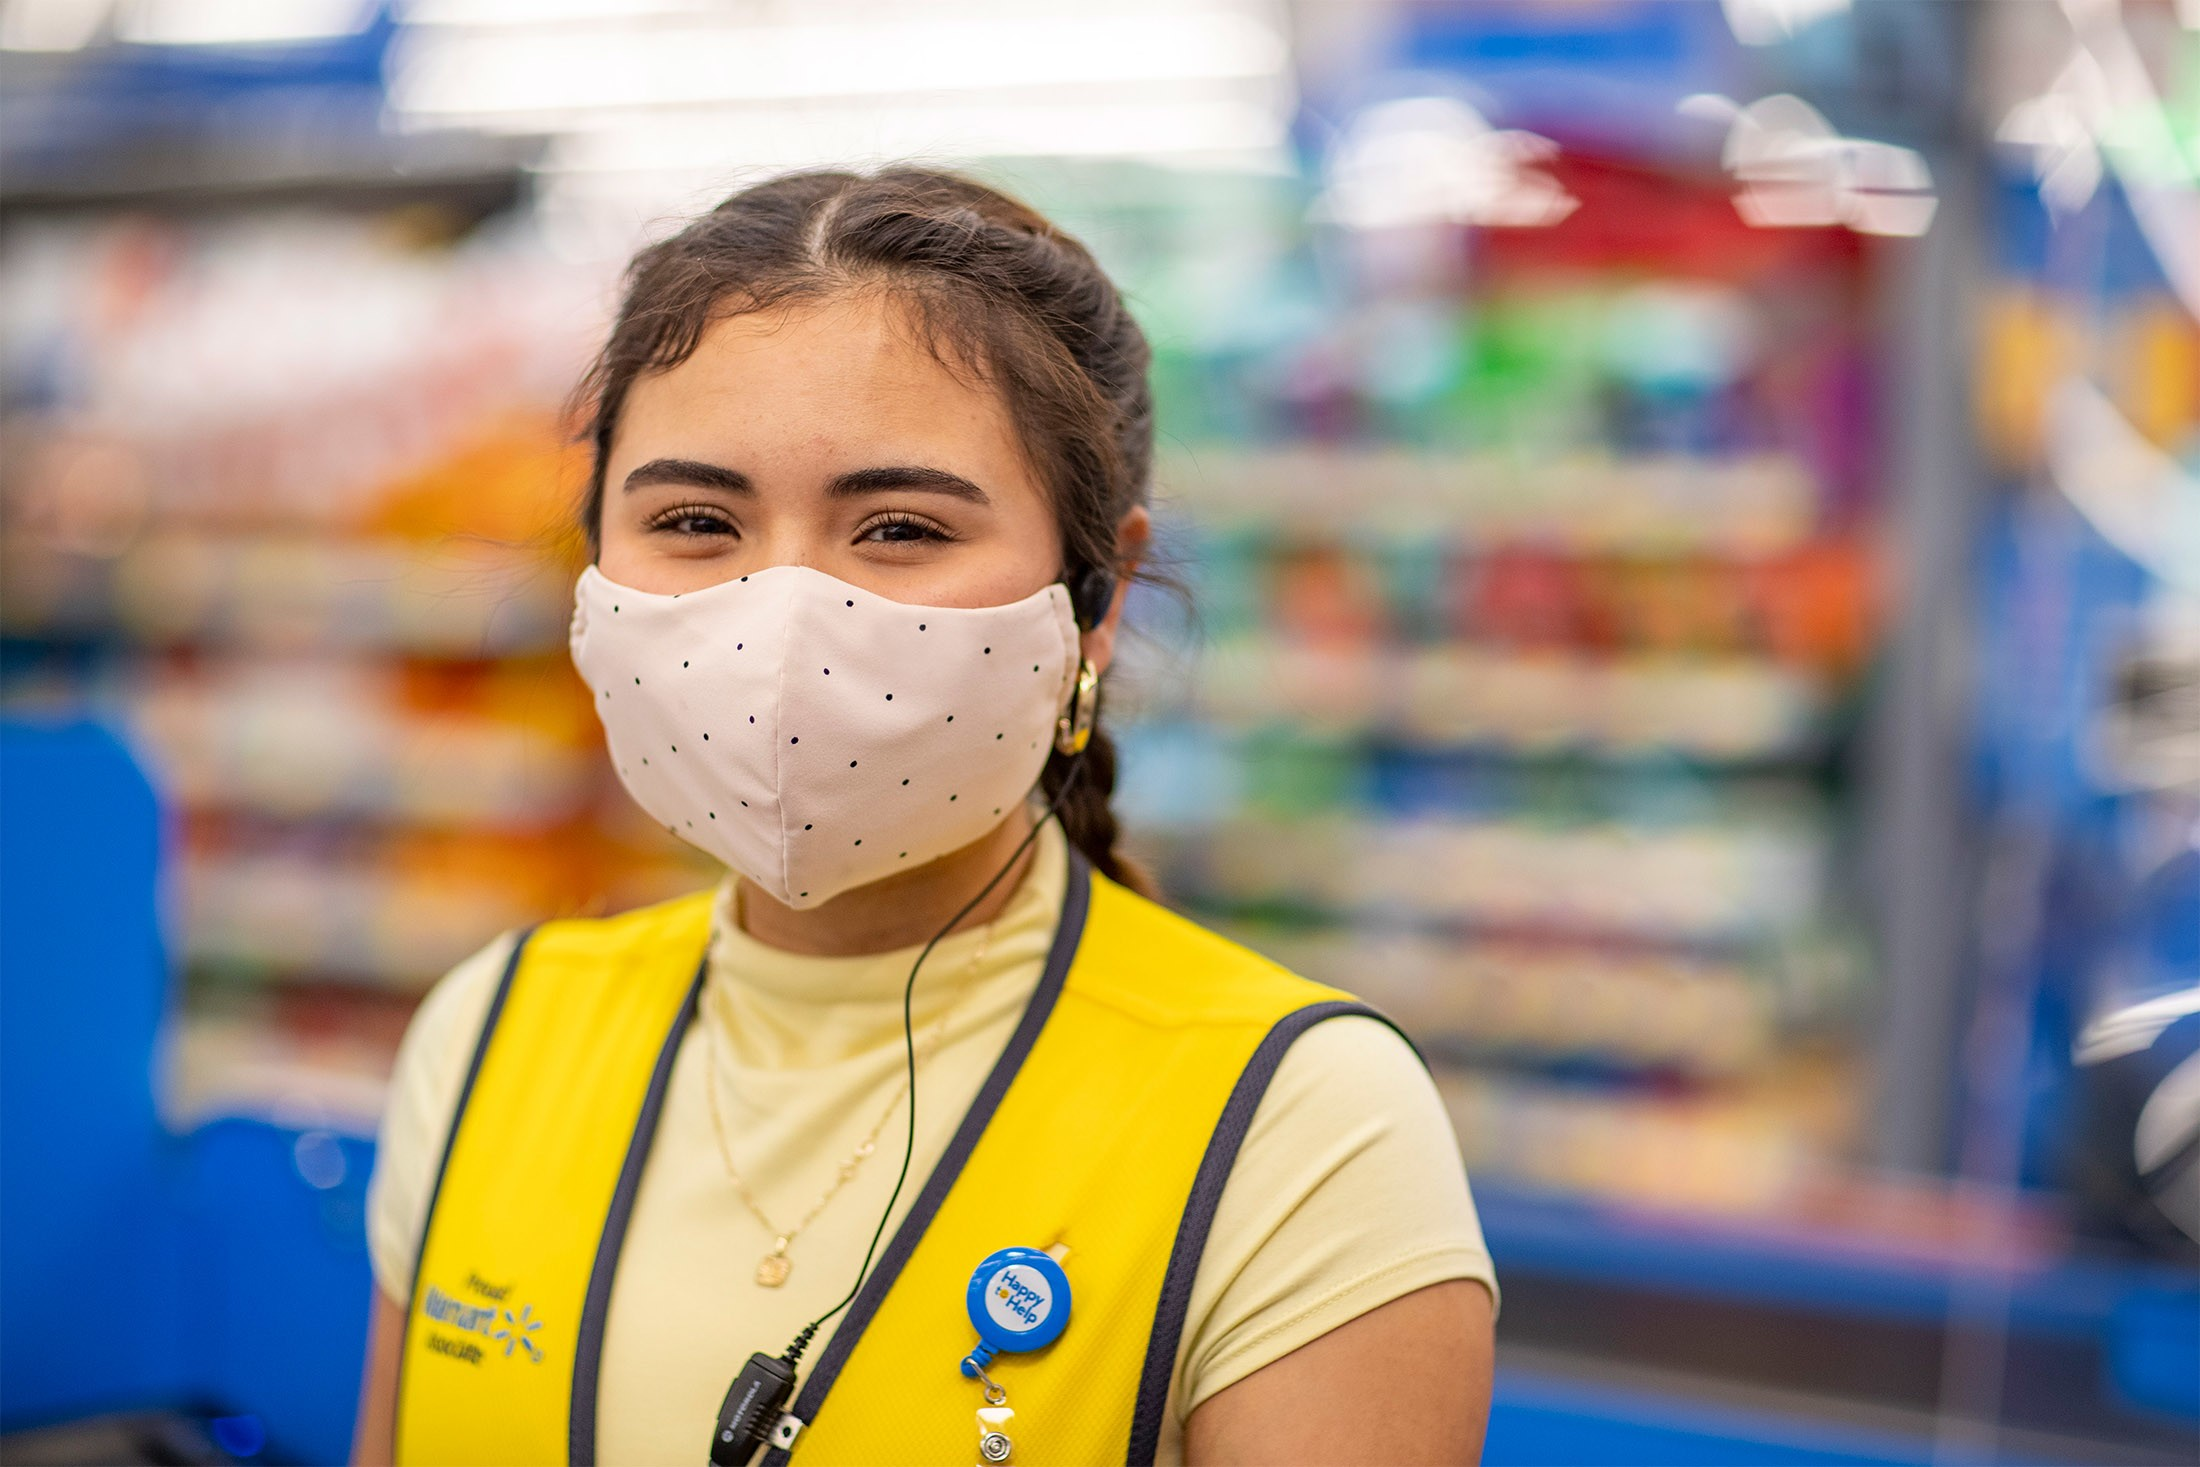 Associate Smiling in Yellow Vest Wearing a Mask